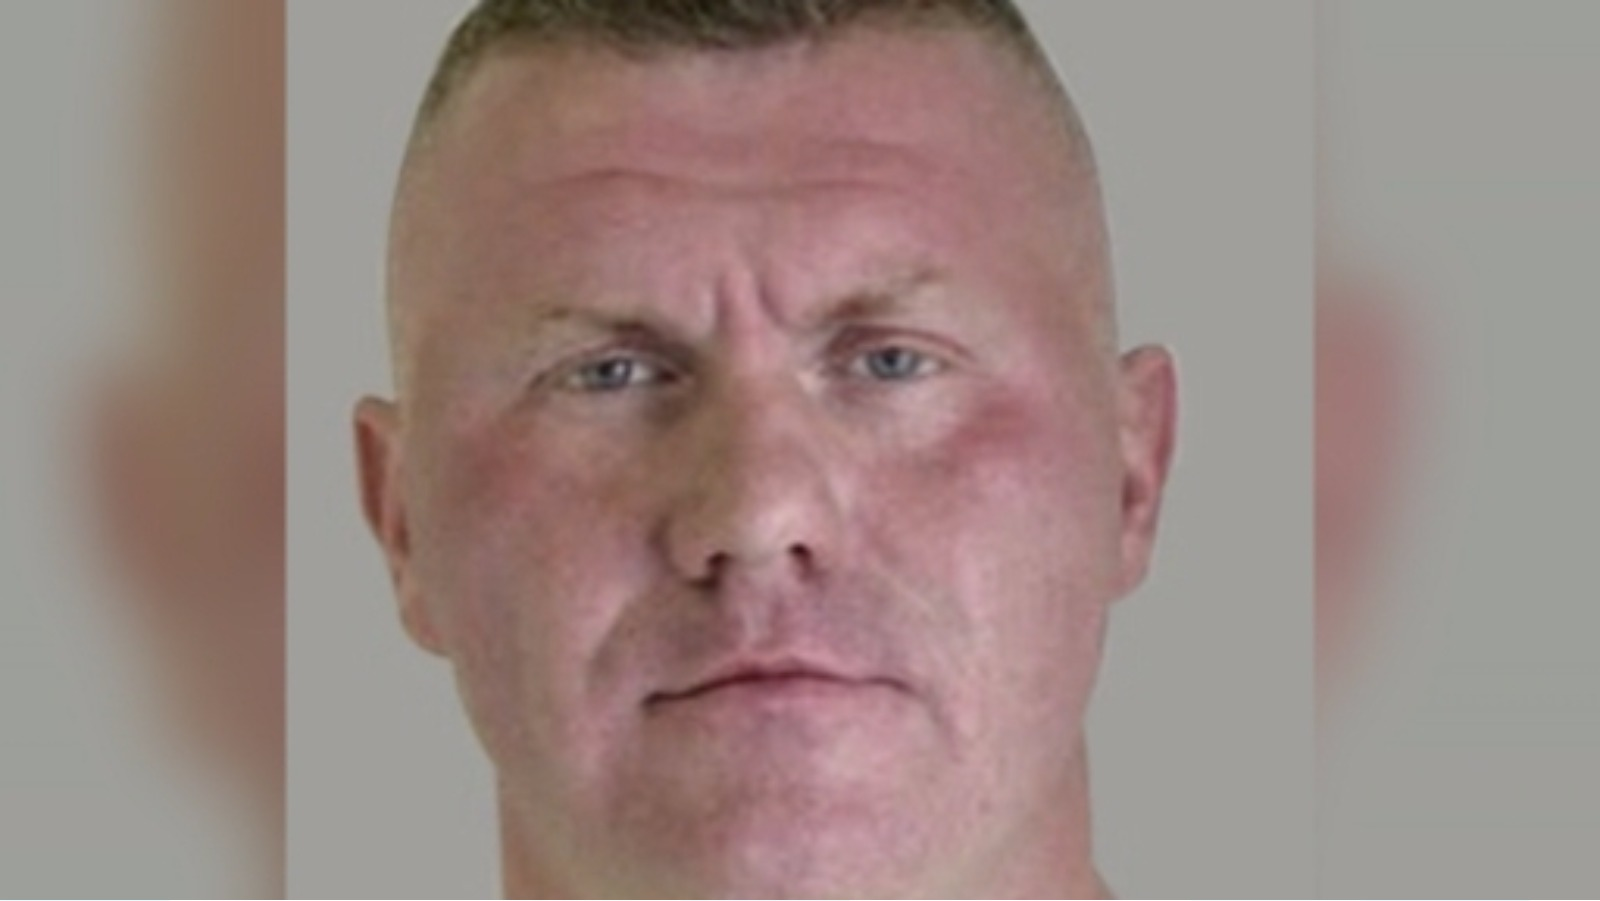 Raoul Moat: The seven day manhunt that gripped the nation in 2010 | ITV News